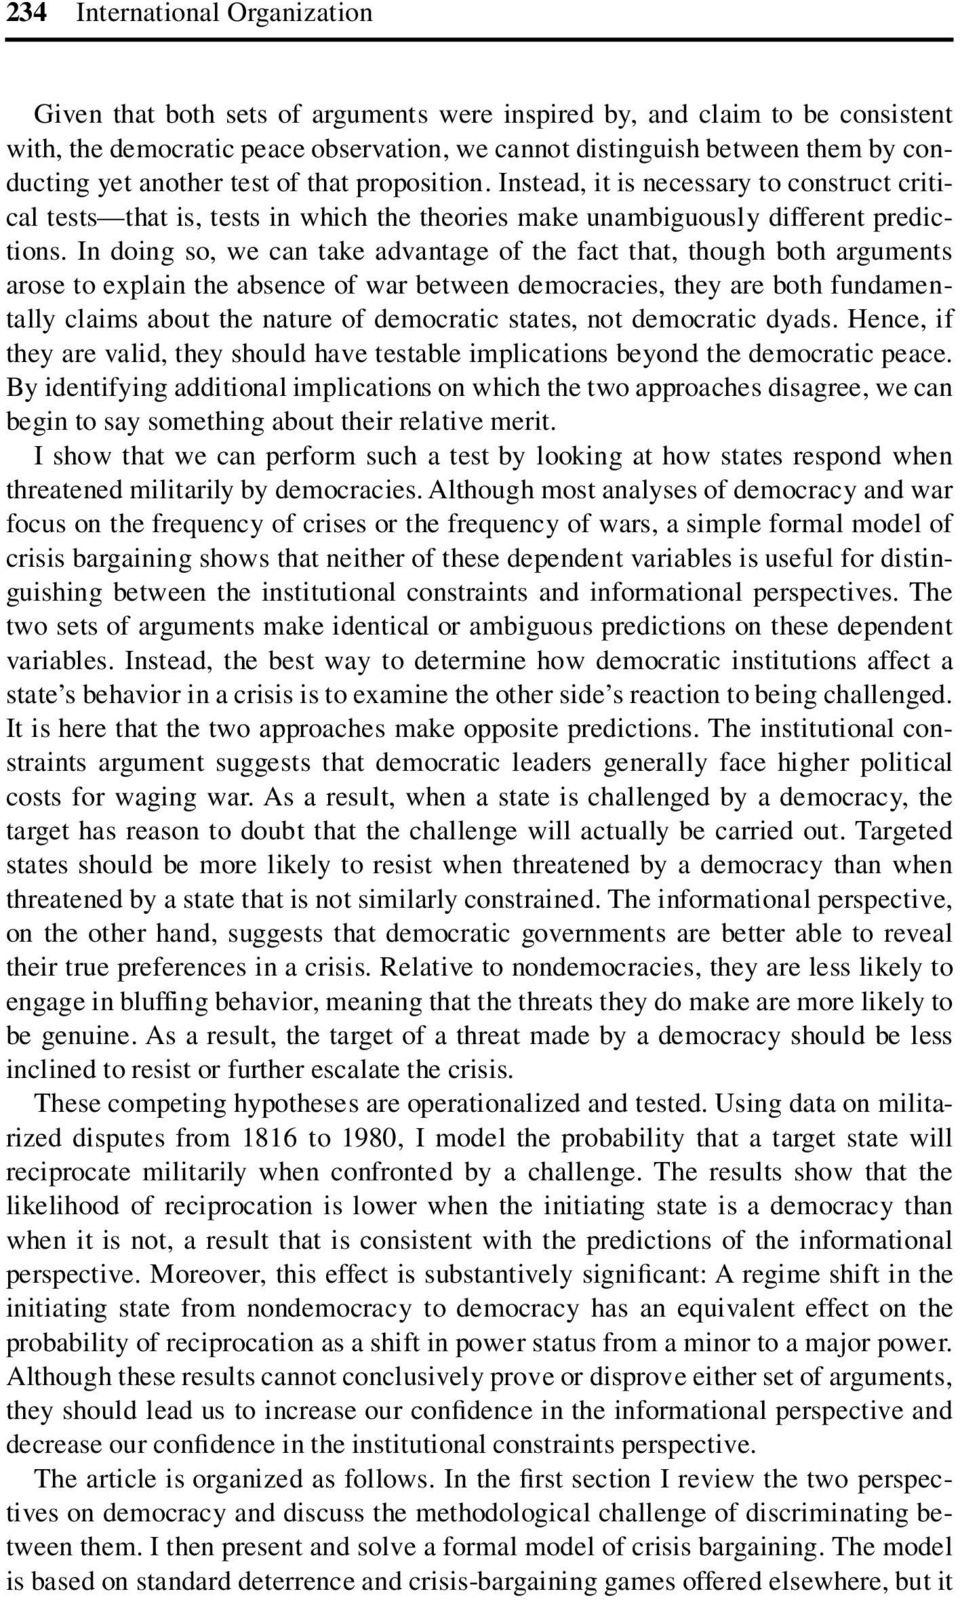 In doing so, we can take advantage of the fact that, though both arguments arose to explain the absence of war between democracies, they are both fundamentally claims about the nature of democratic